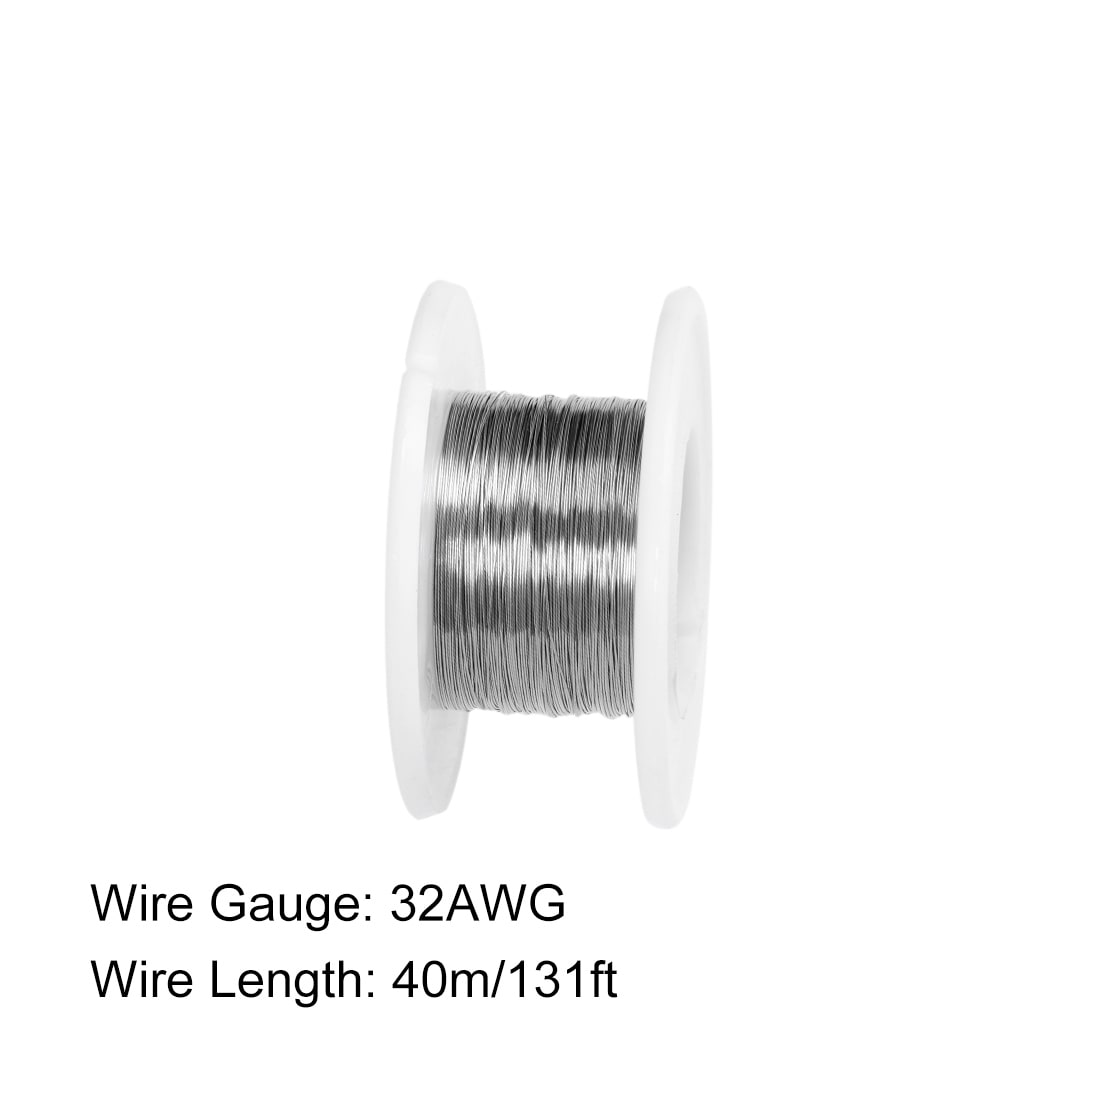 40M 131ft 0.2mm 32AWG Cable Nickle Heater Wire for Heating Elements